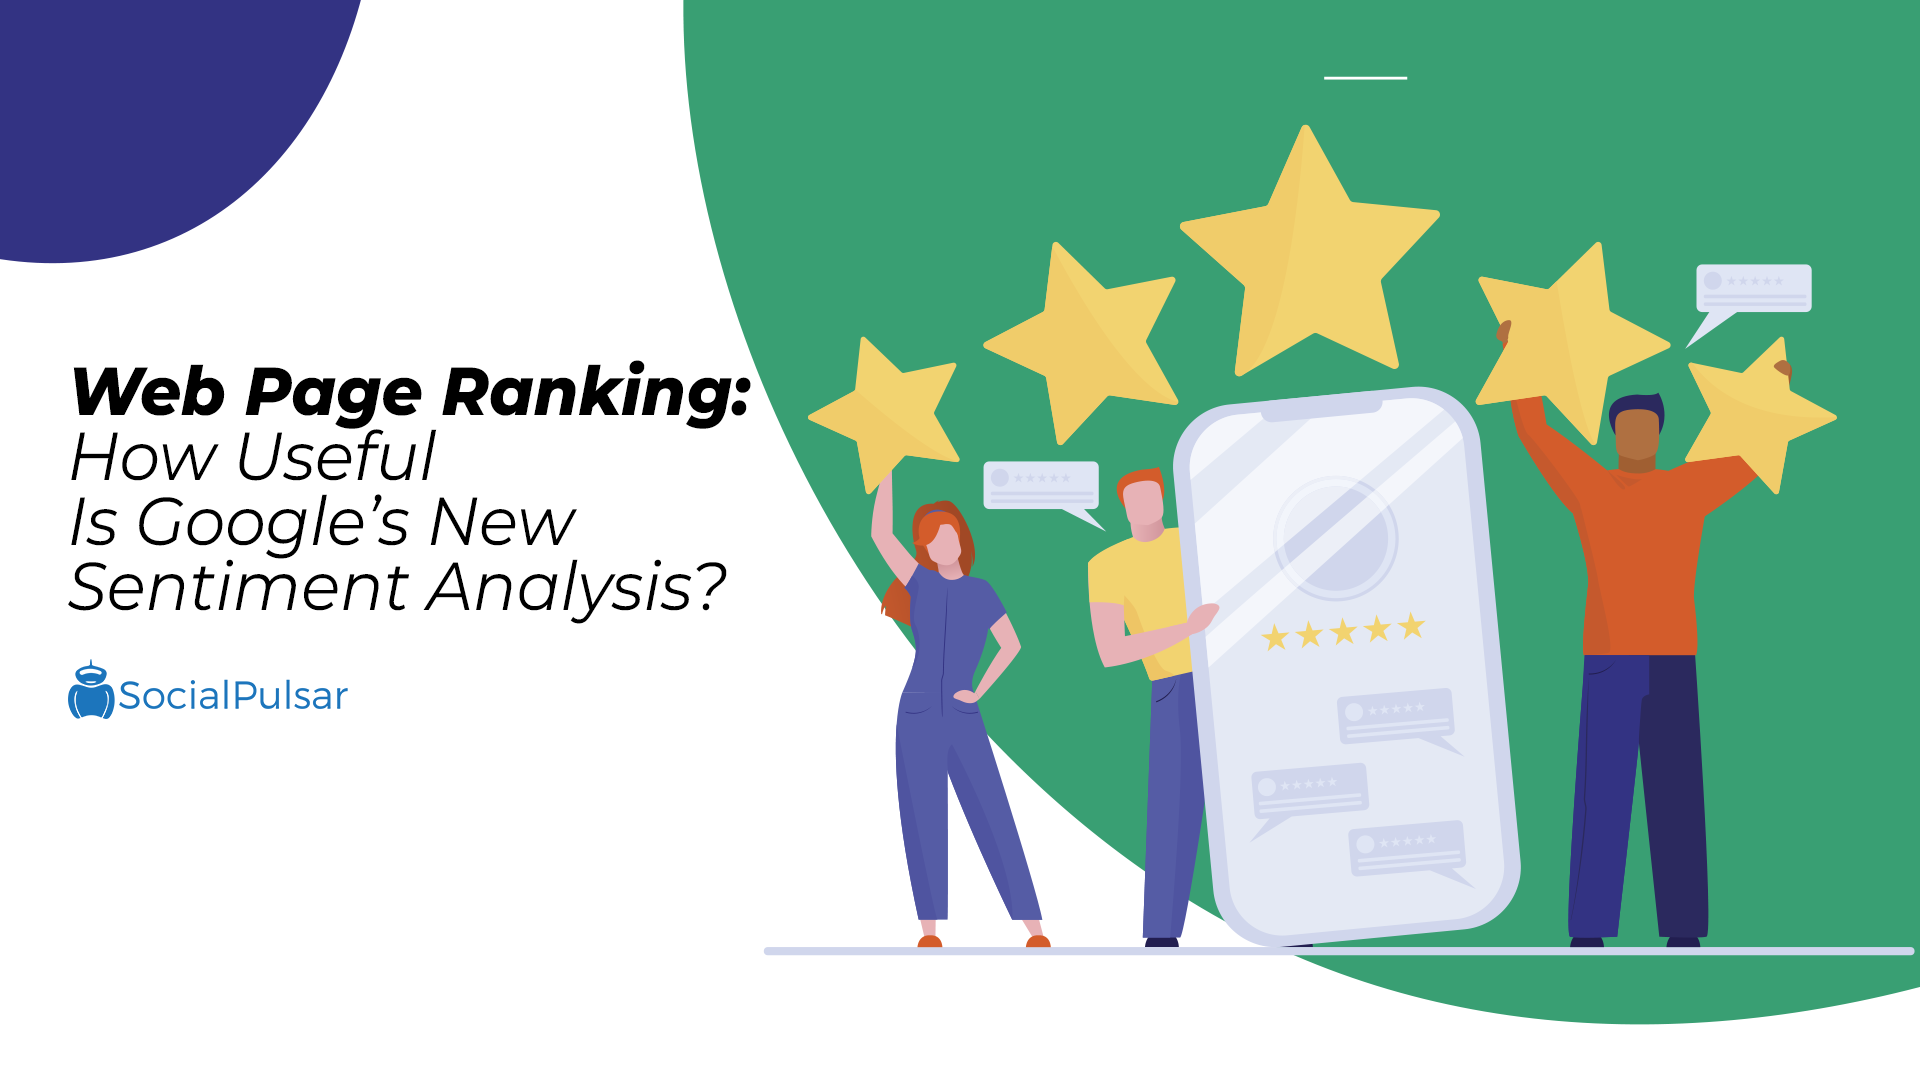 Web Page Ranking: How Useful Is Google's New Sentiment Analysis?